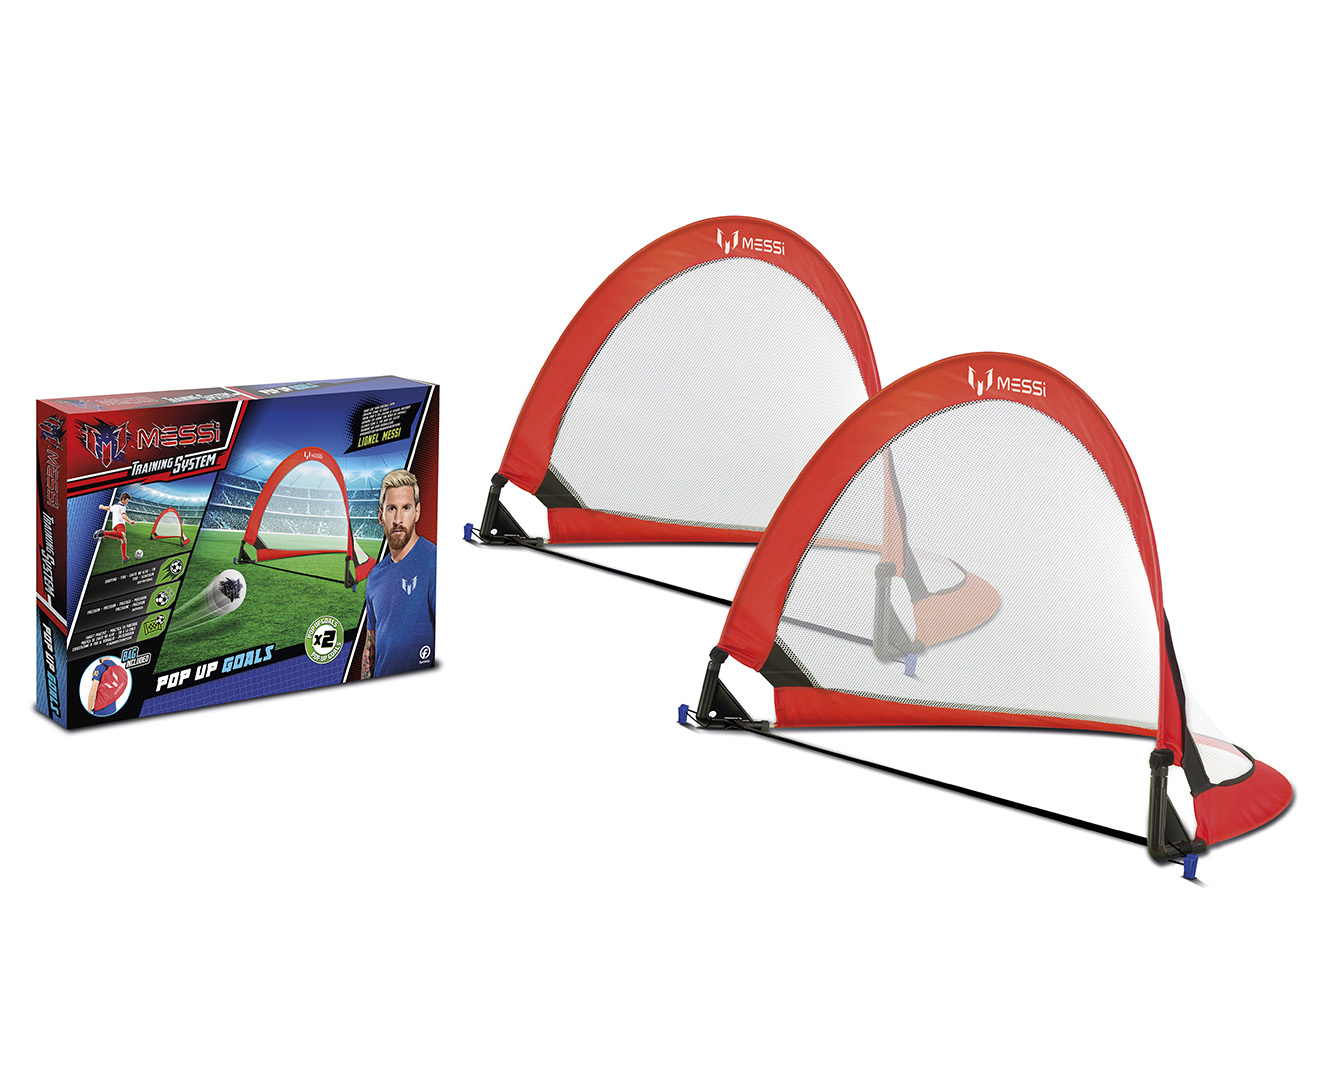 1ee65c091 Messi Training System Pop Up Goals 2-Pack | Catch.com.au